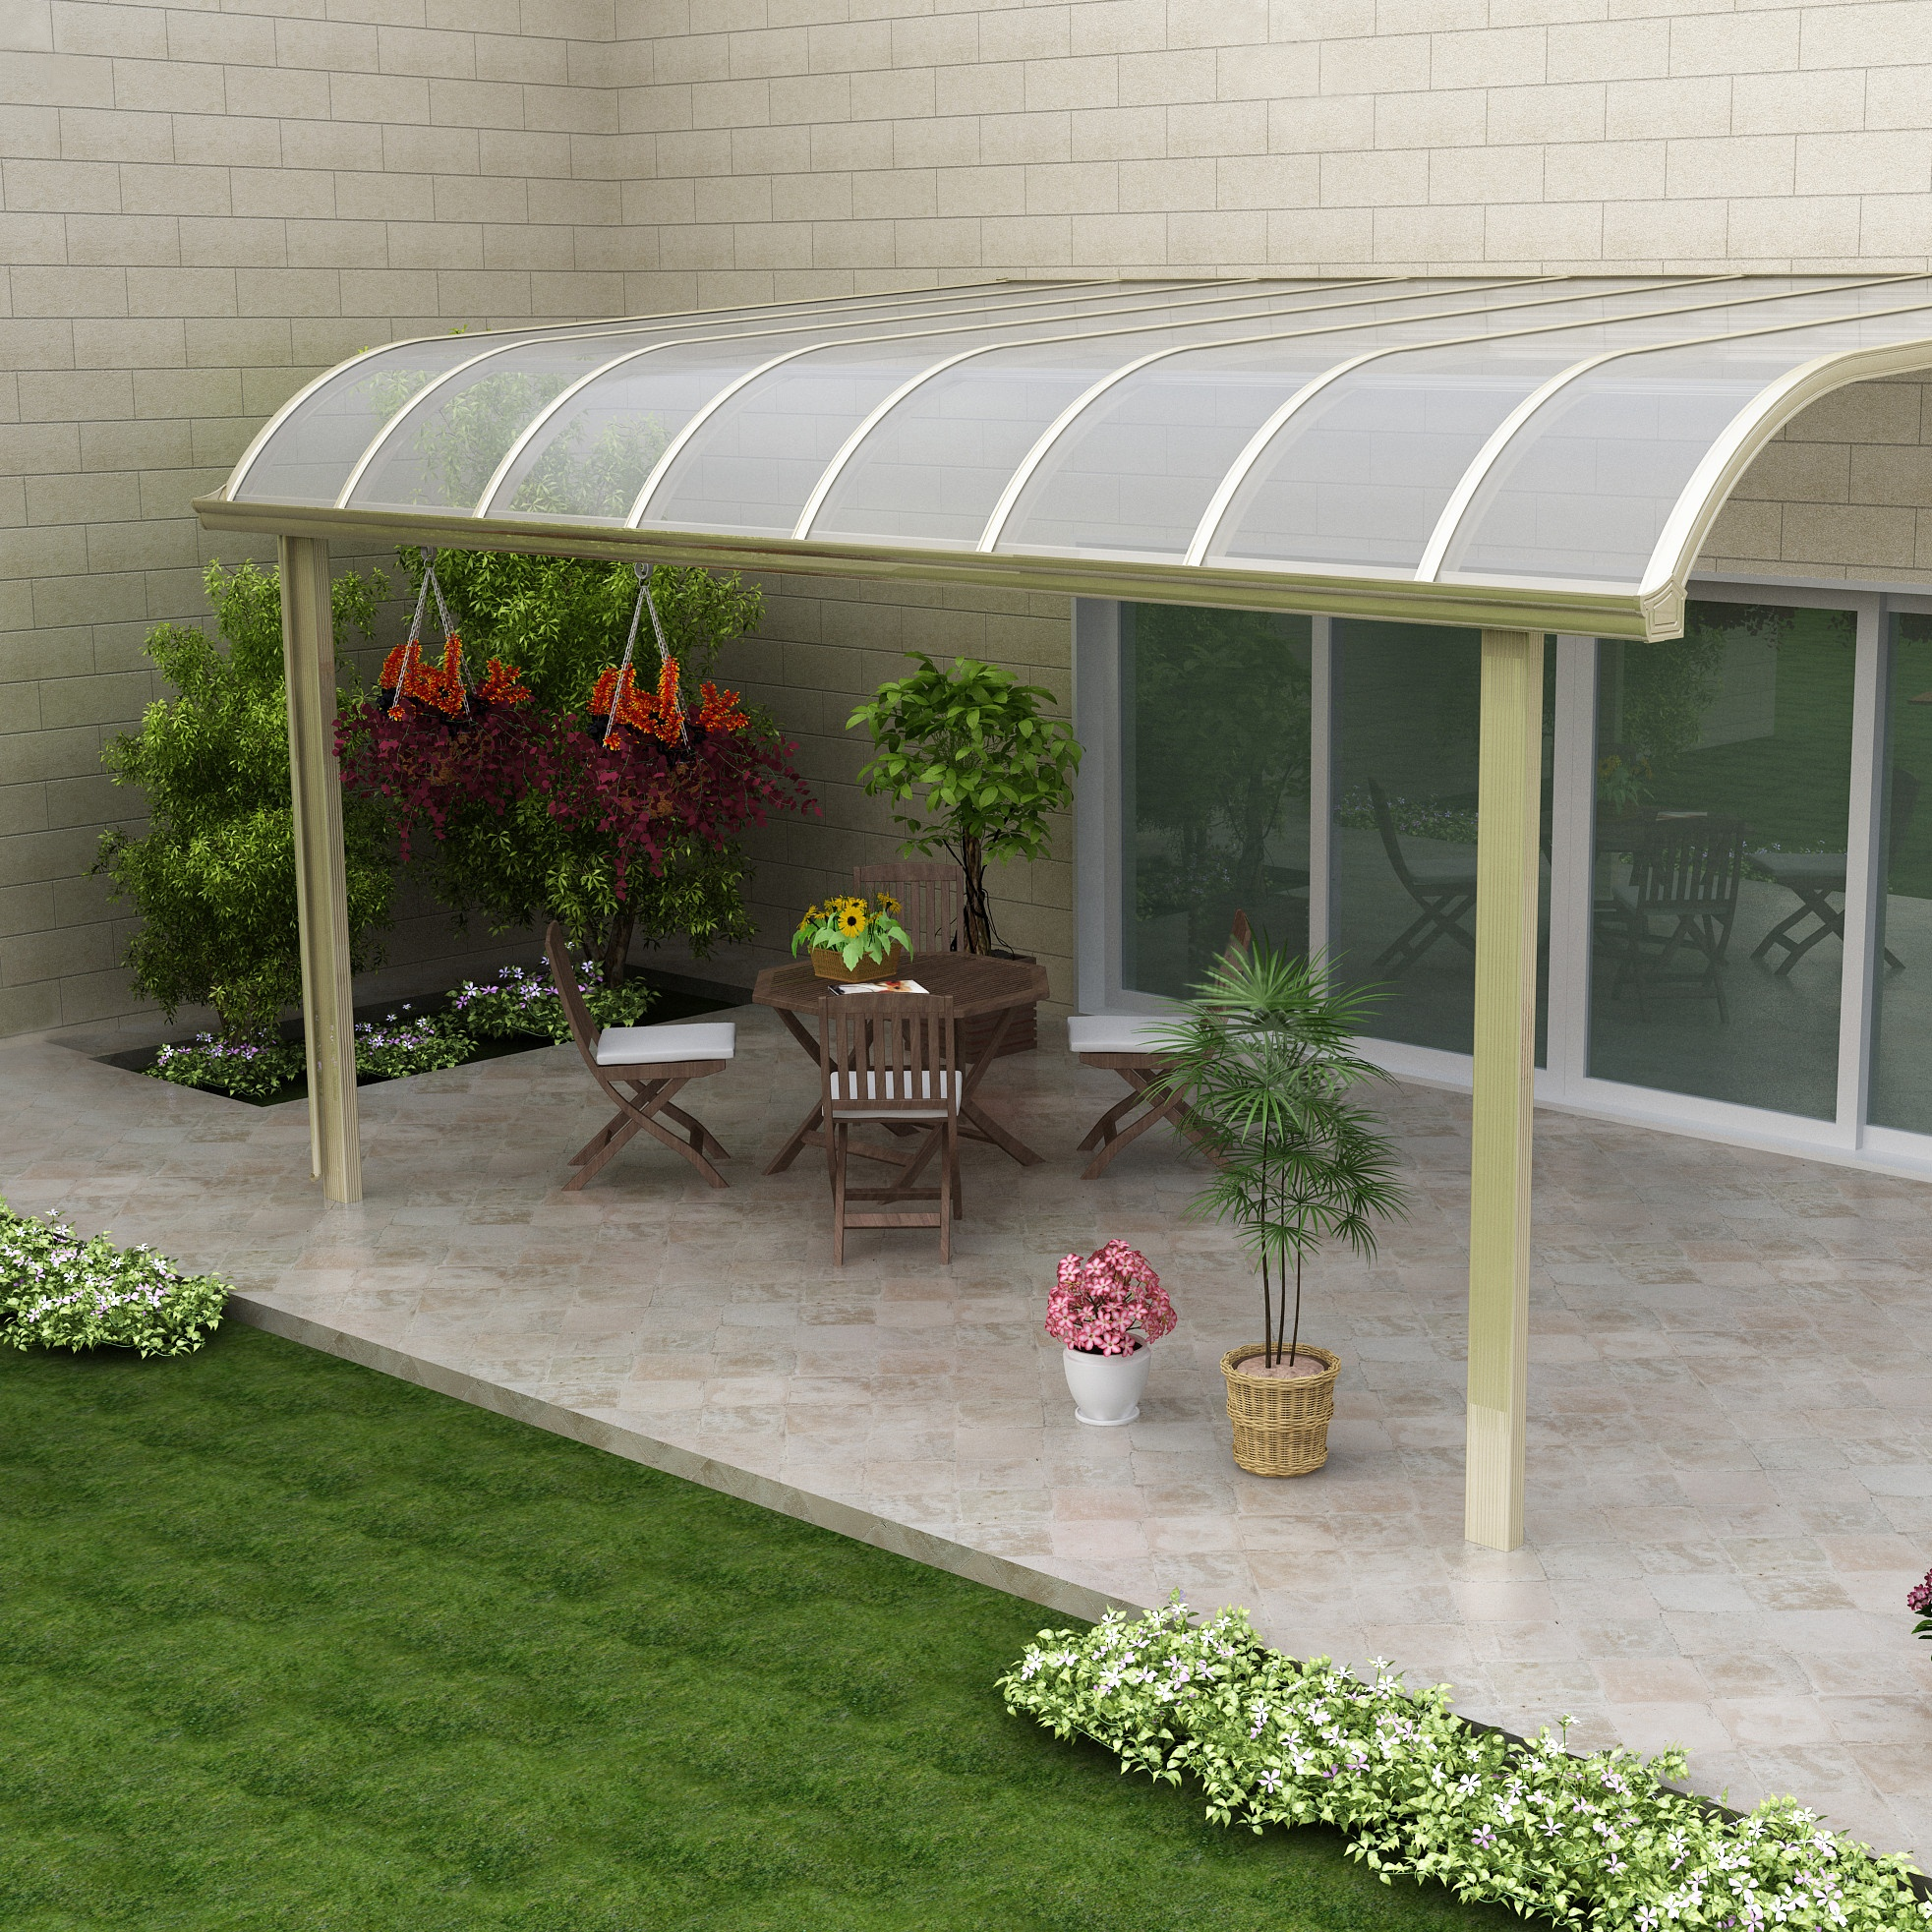 Waterproof Roof Patio Cover Polycarbonate Balcony Aluminum Canopy